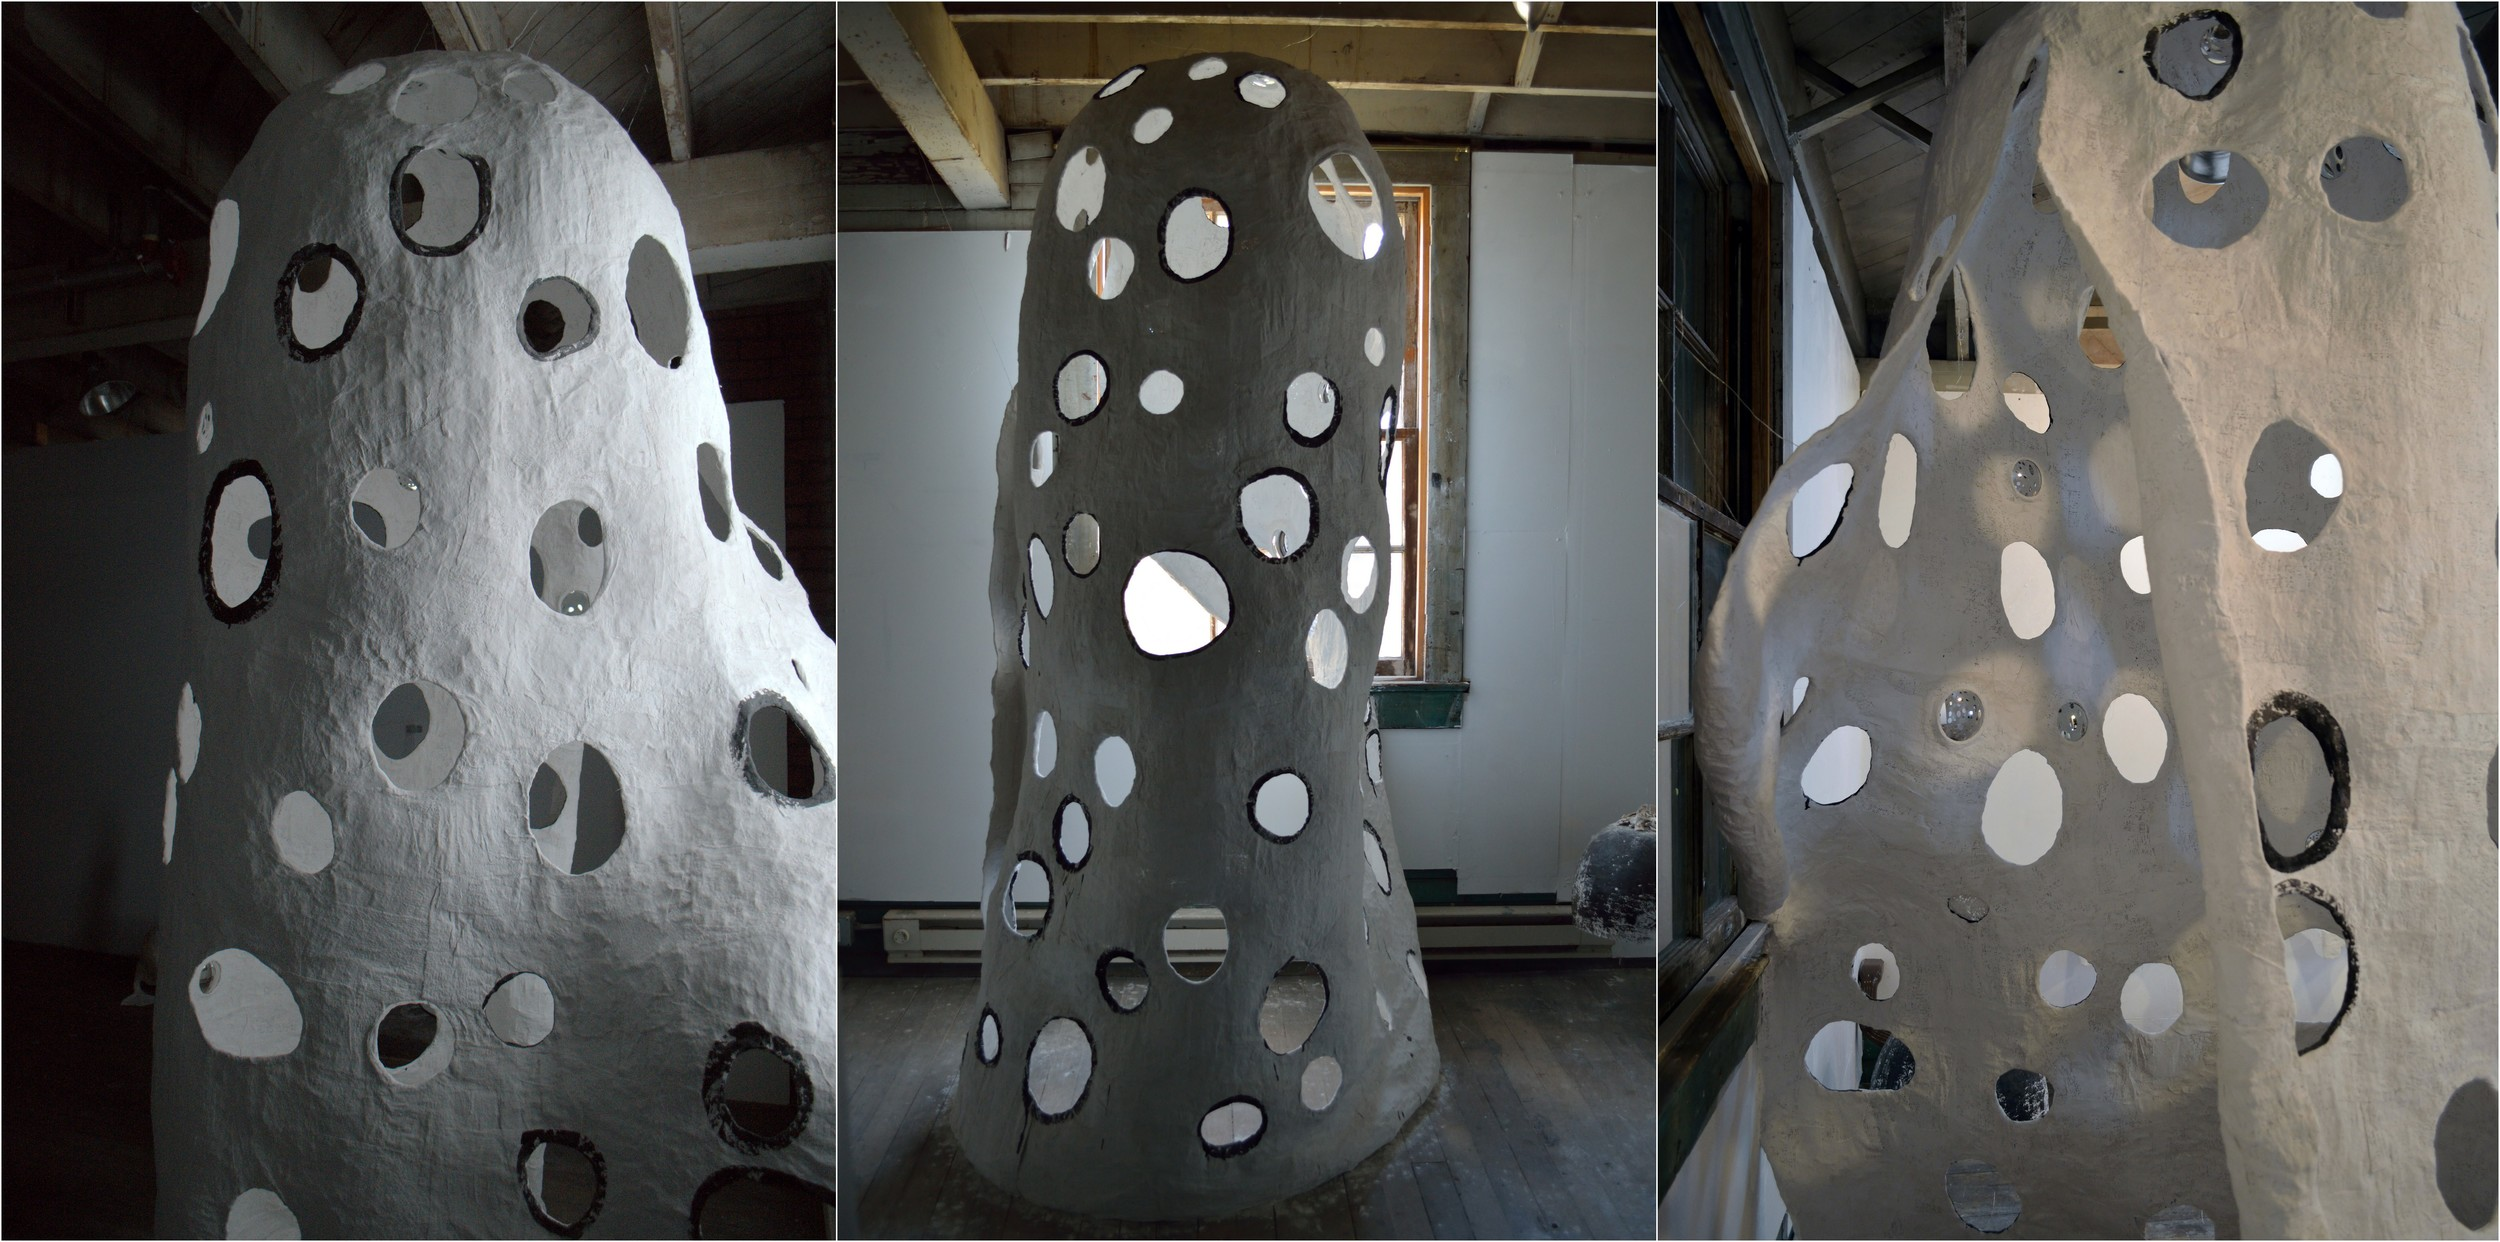 Permeable Paraboloid (i like to see infinity), 2013    exterior views: right side, frontal, entryway-left side